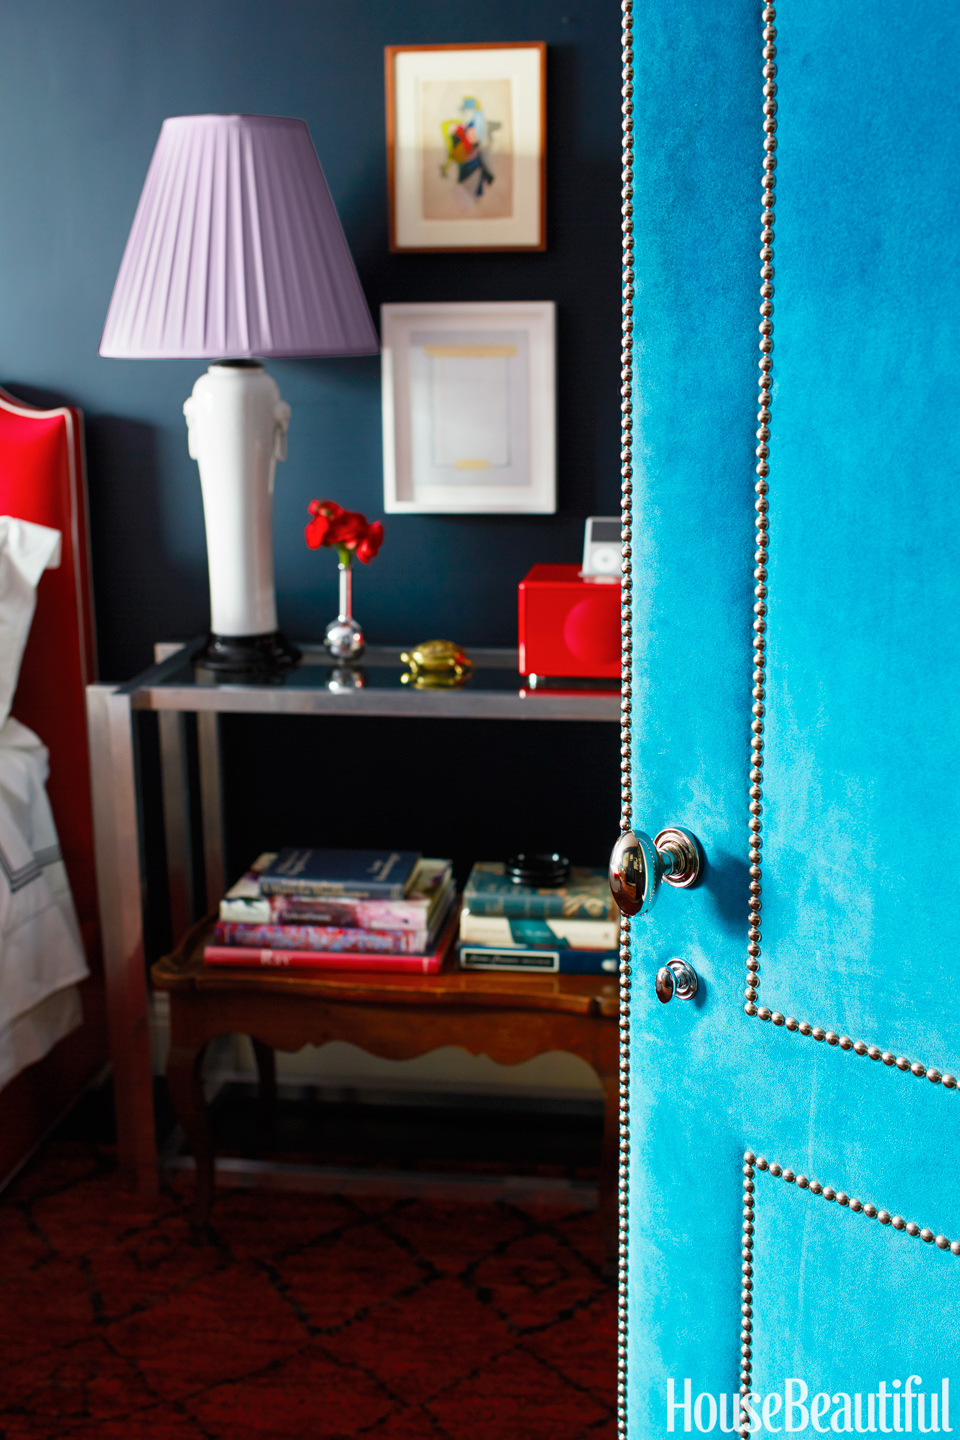 A Colorful Manhattan Apartment by Nick Olsen